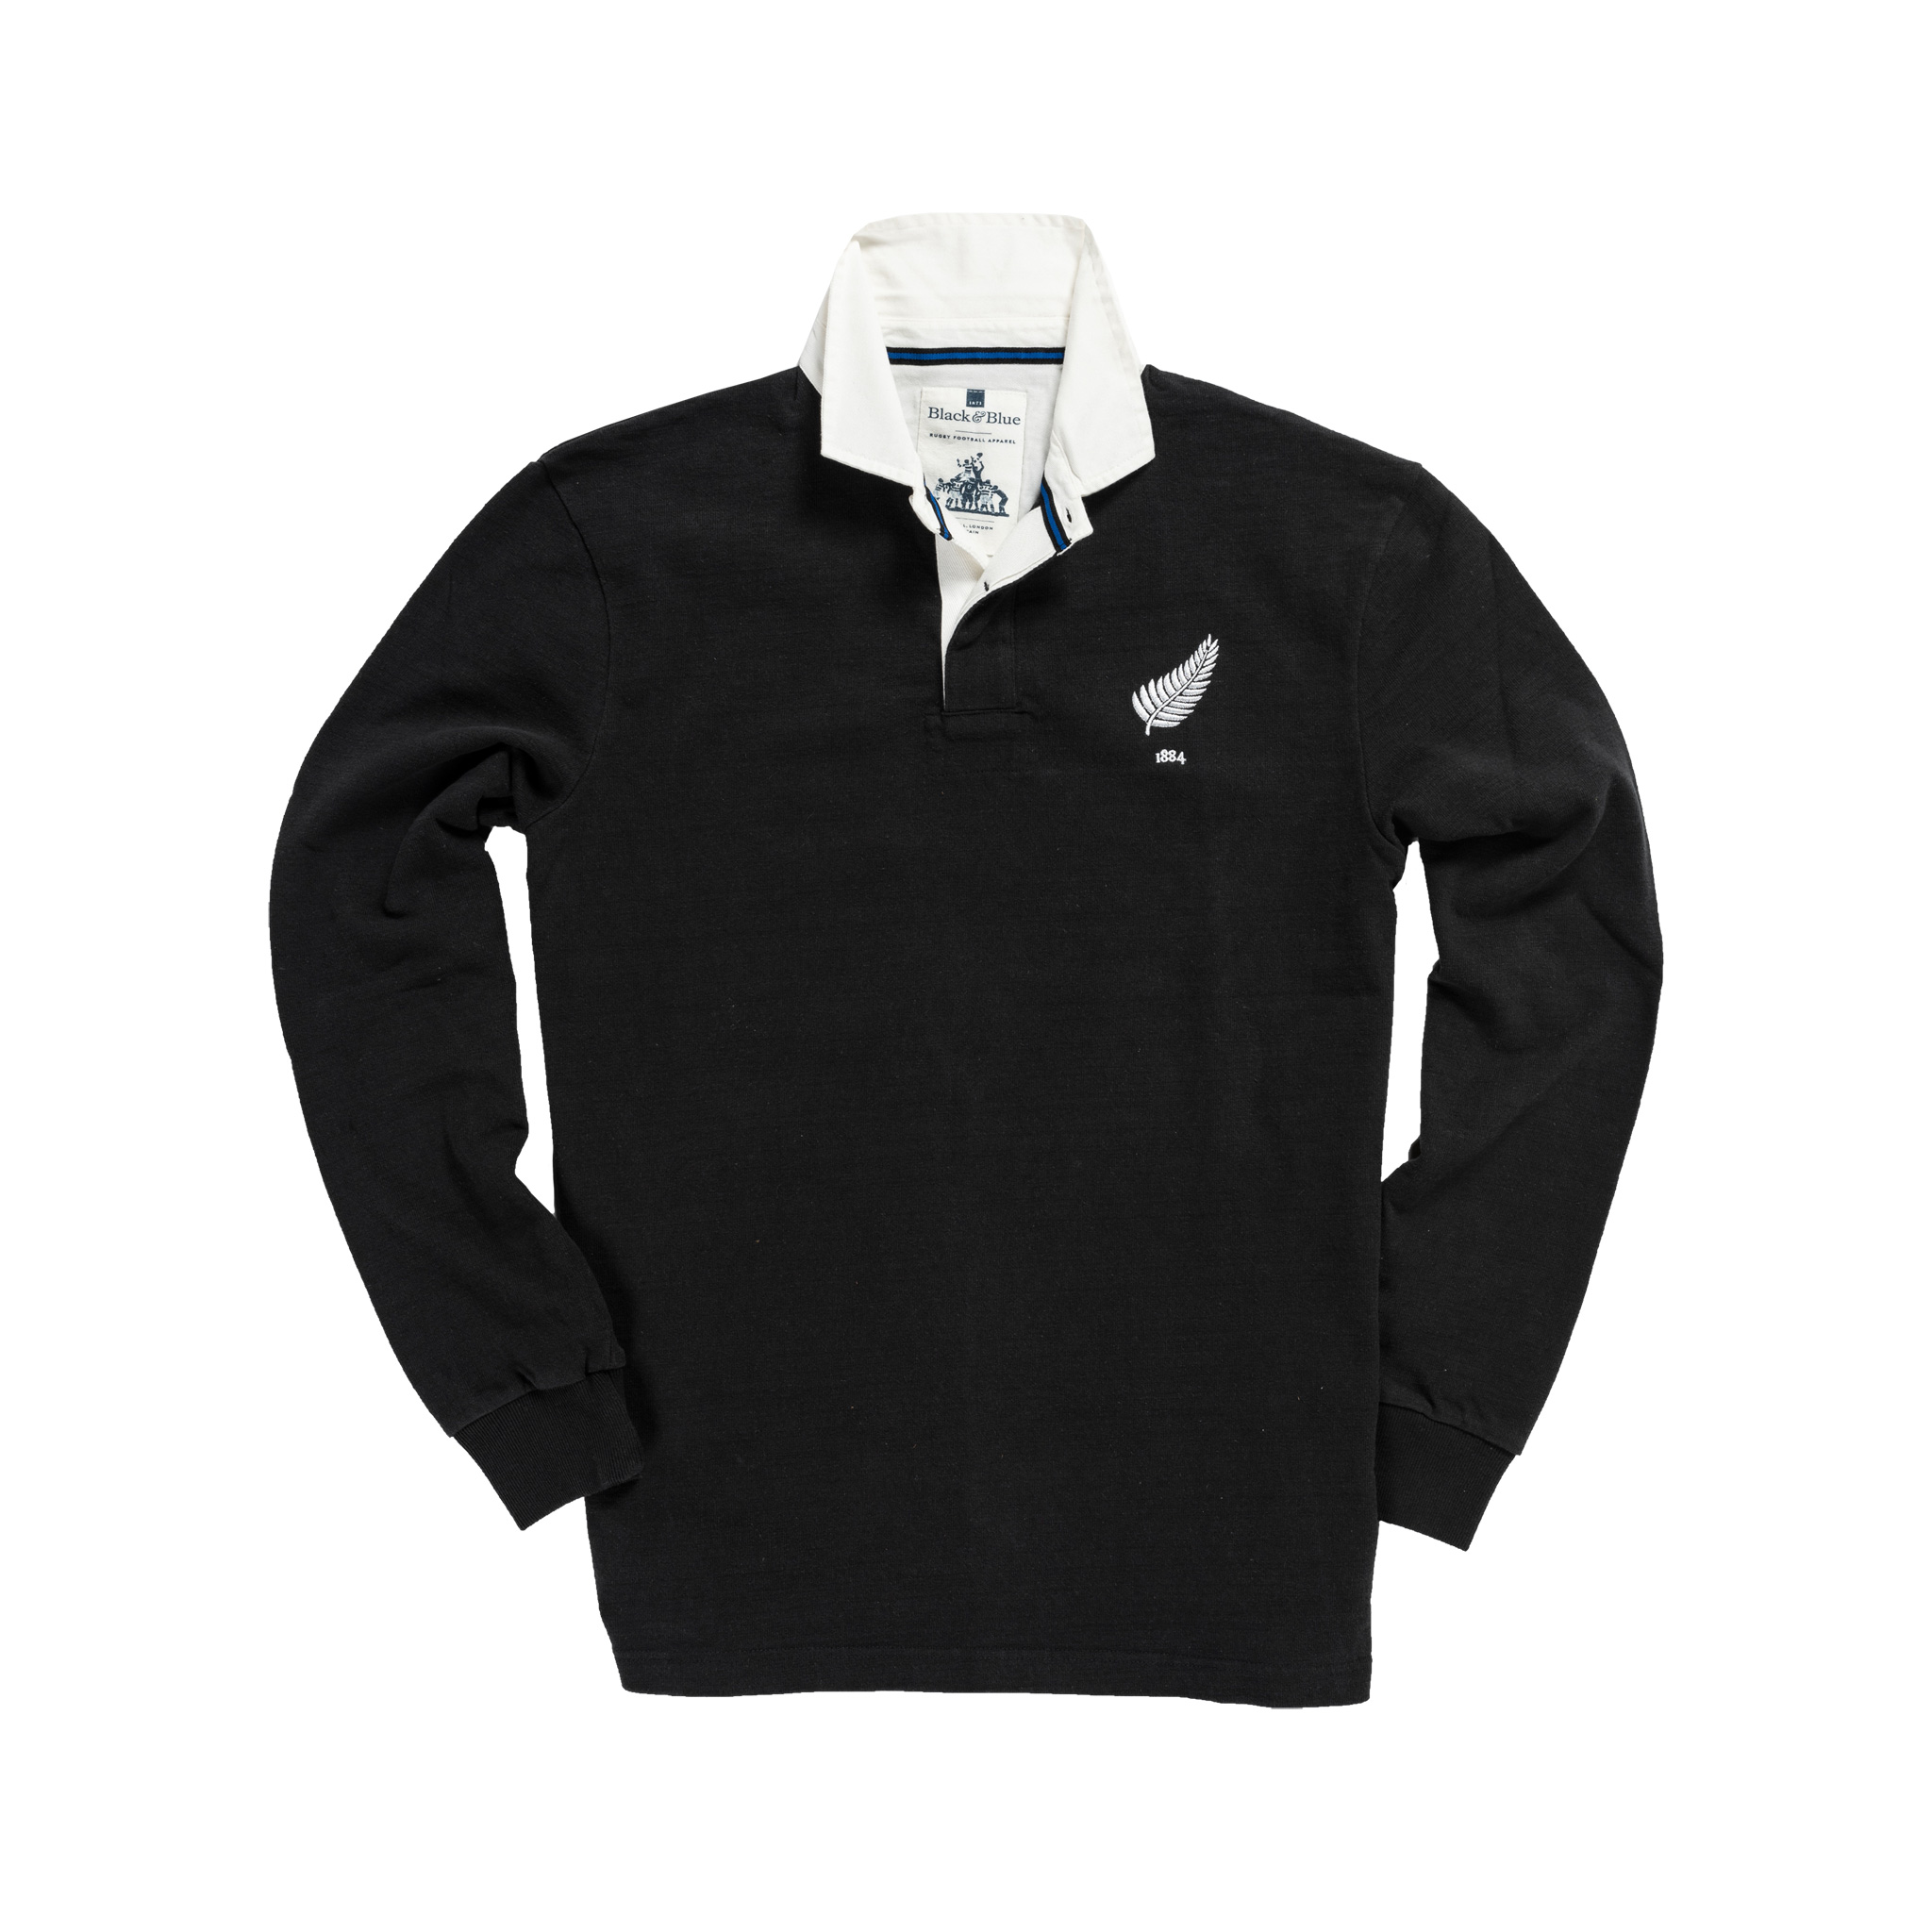 New Zealand 1884 Vintage Rugby Shirt